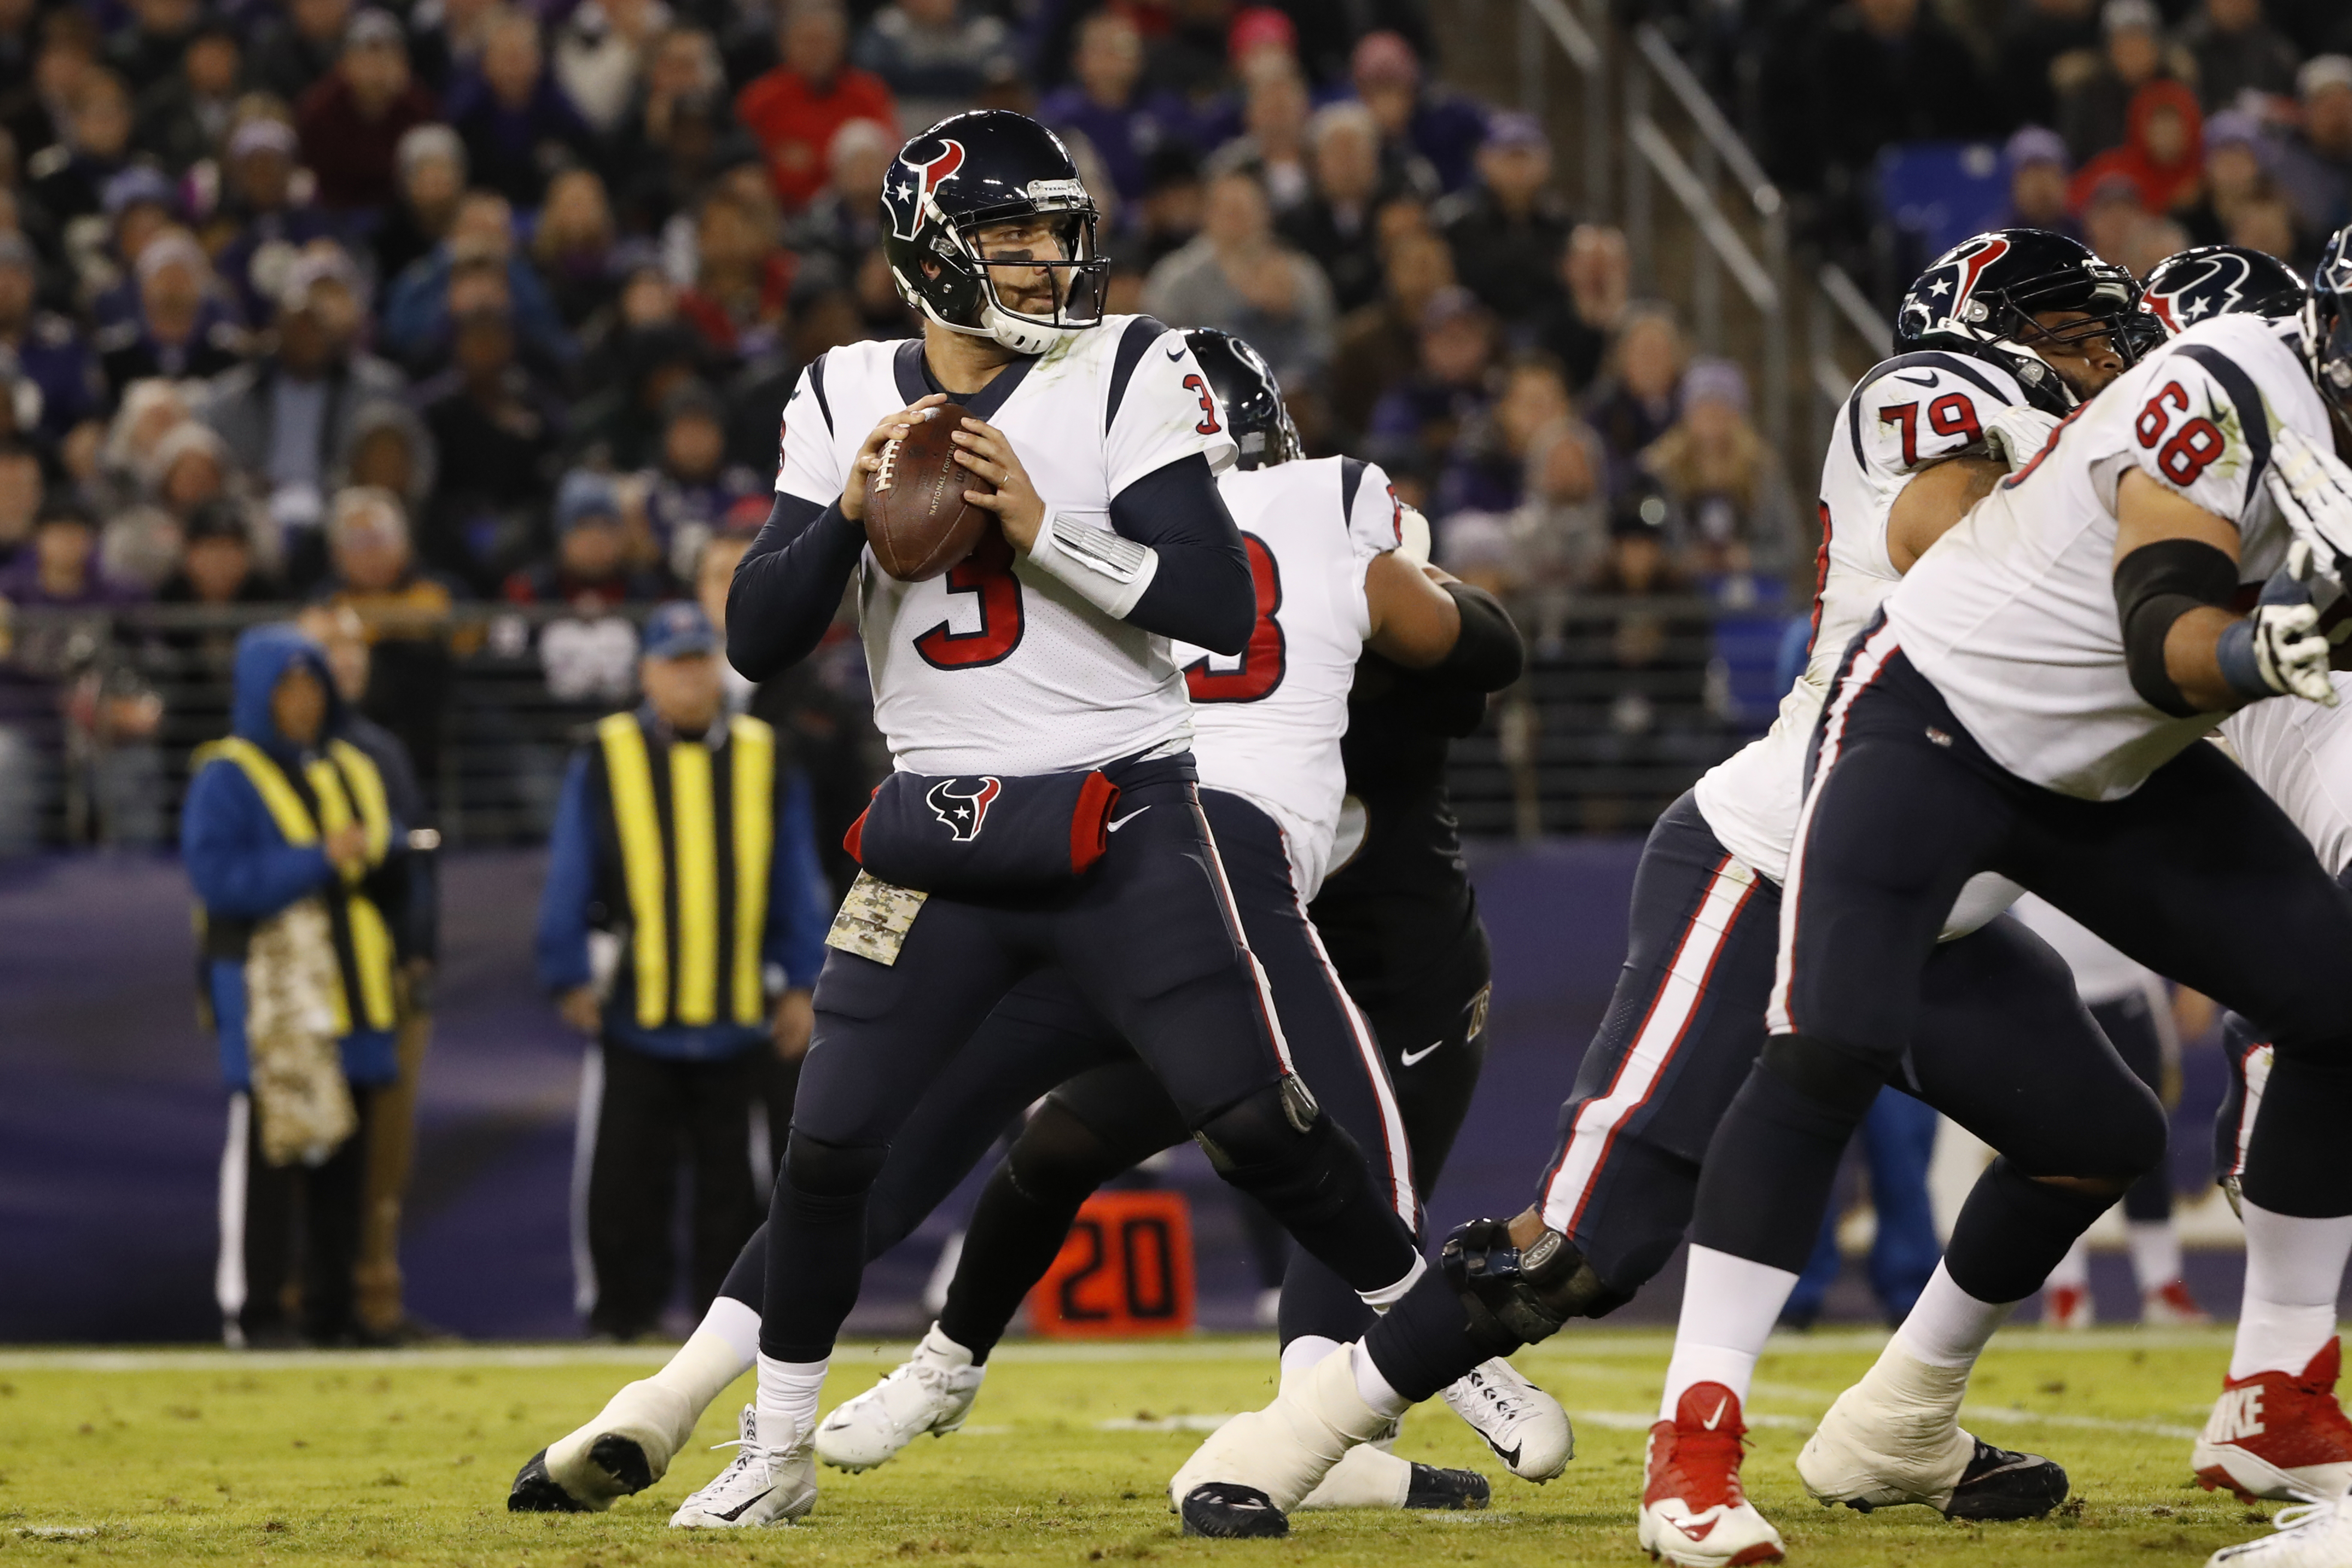 BALTIMORE, MD - NOVEMBER 27: Quarterback Tom Savage #3 of the Houston Texans throws the ball in the second quarter against the Baltimore Ravens at M&T Bank Stadium on November 27, 2017 in Baltimore, Maryland. (Photo by Scott Taetsch/Getty Images)